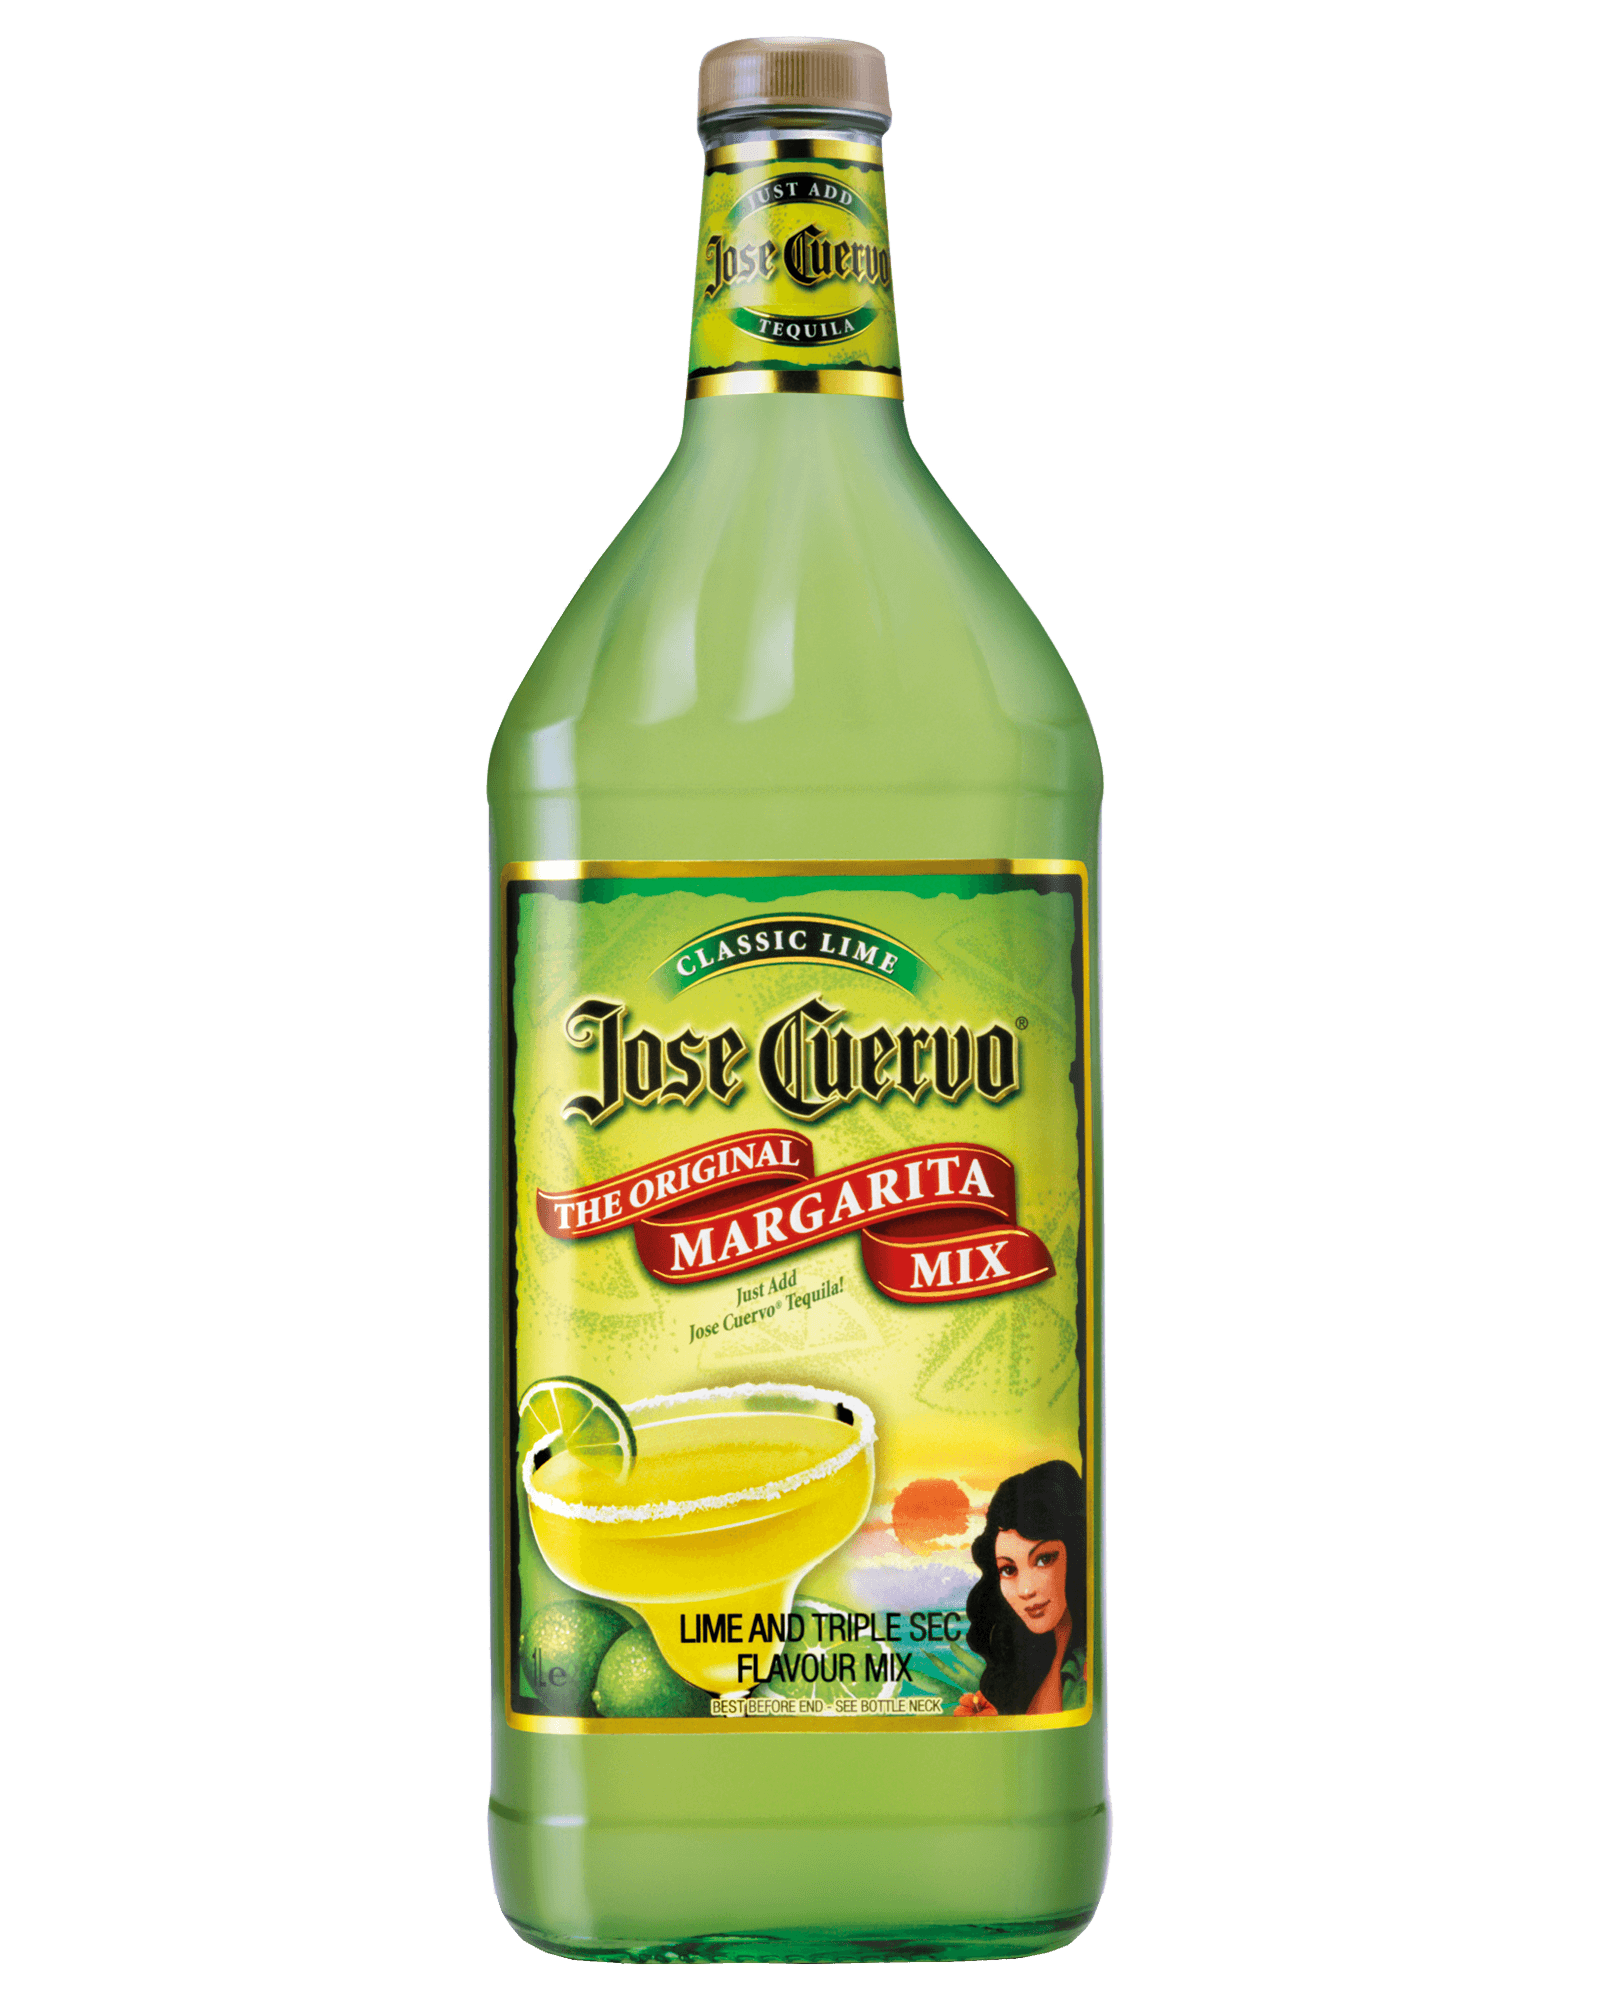 Jose Cuervo Margarita Mix 1L